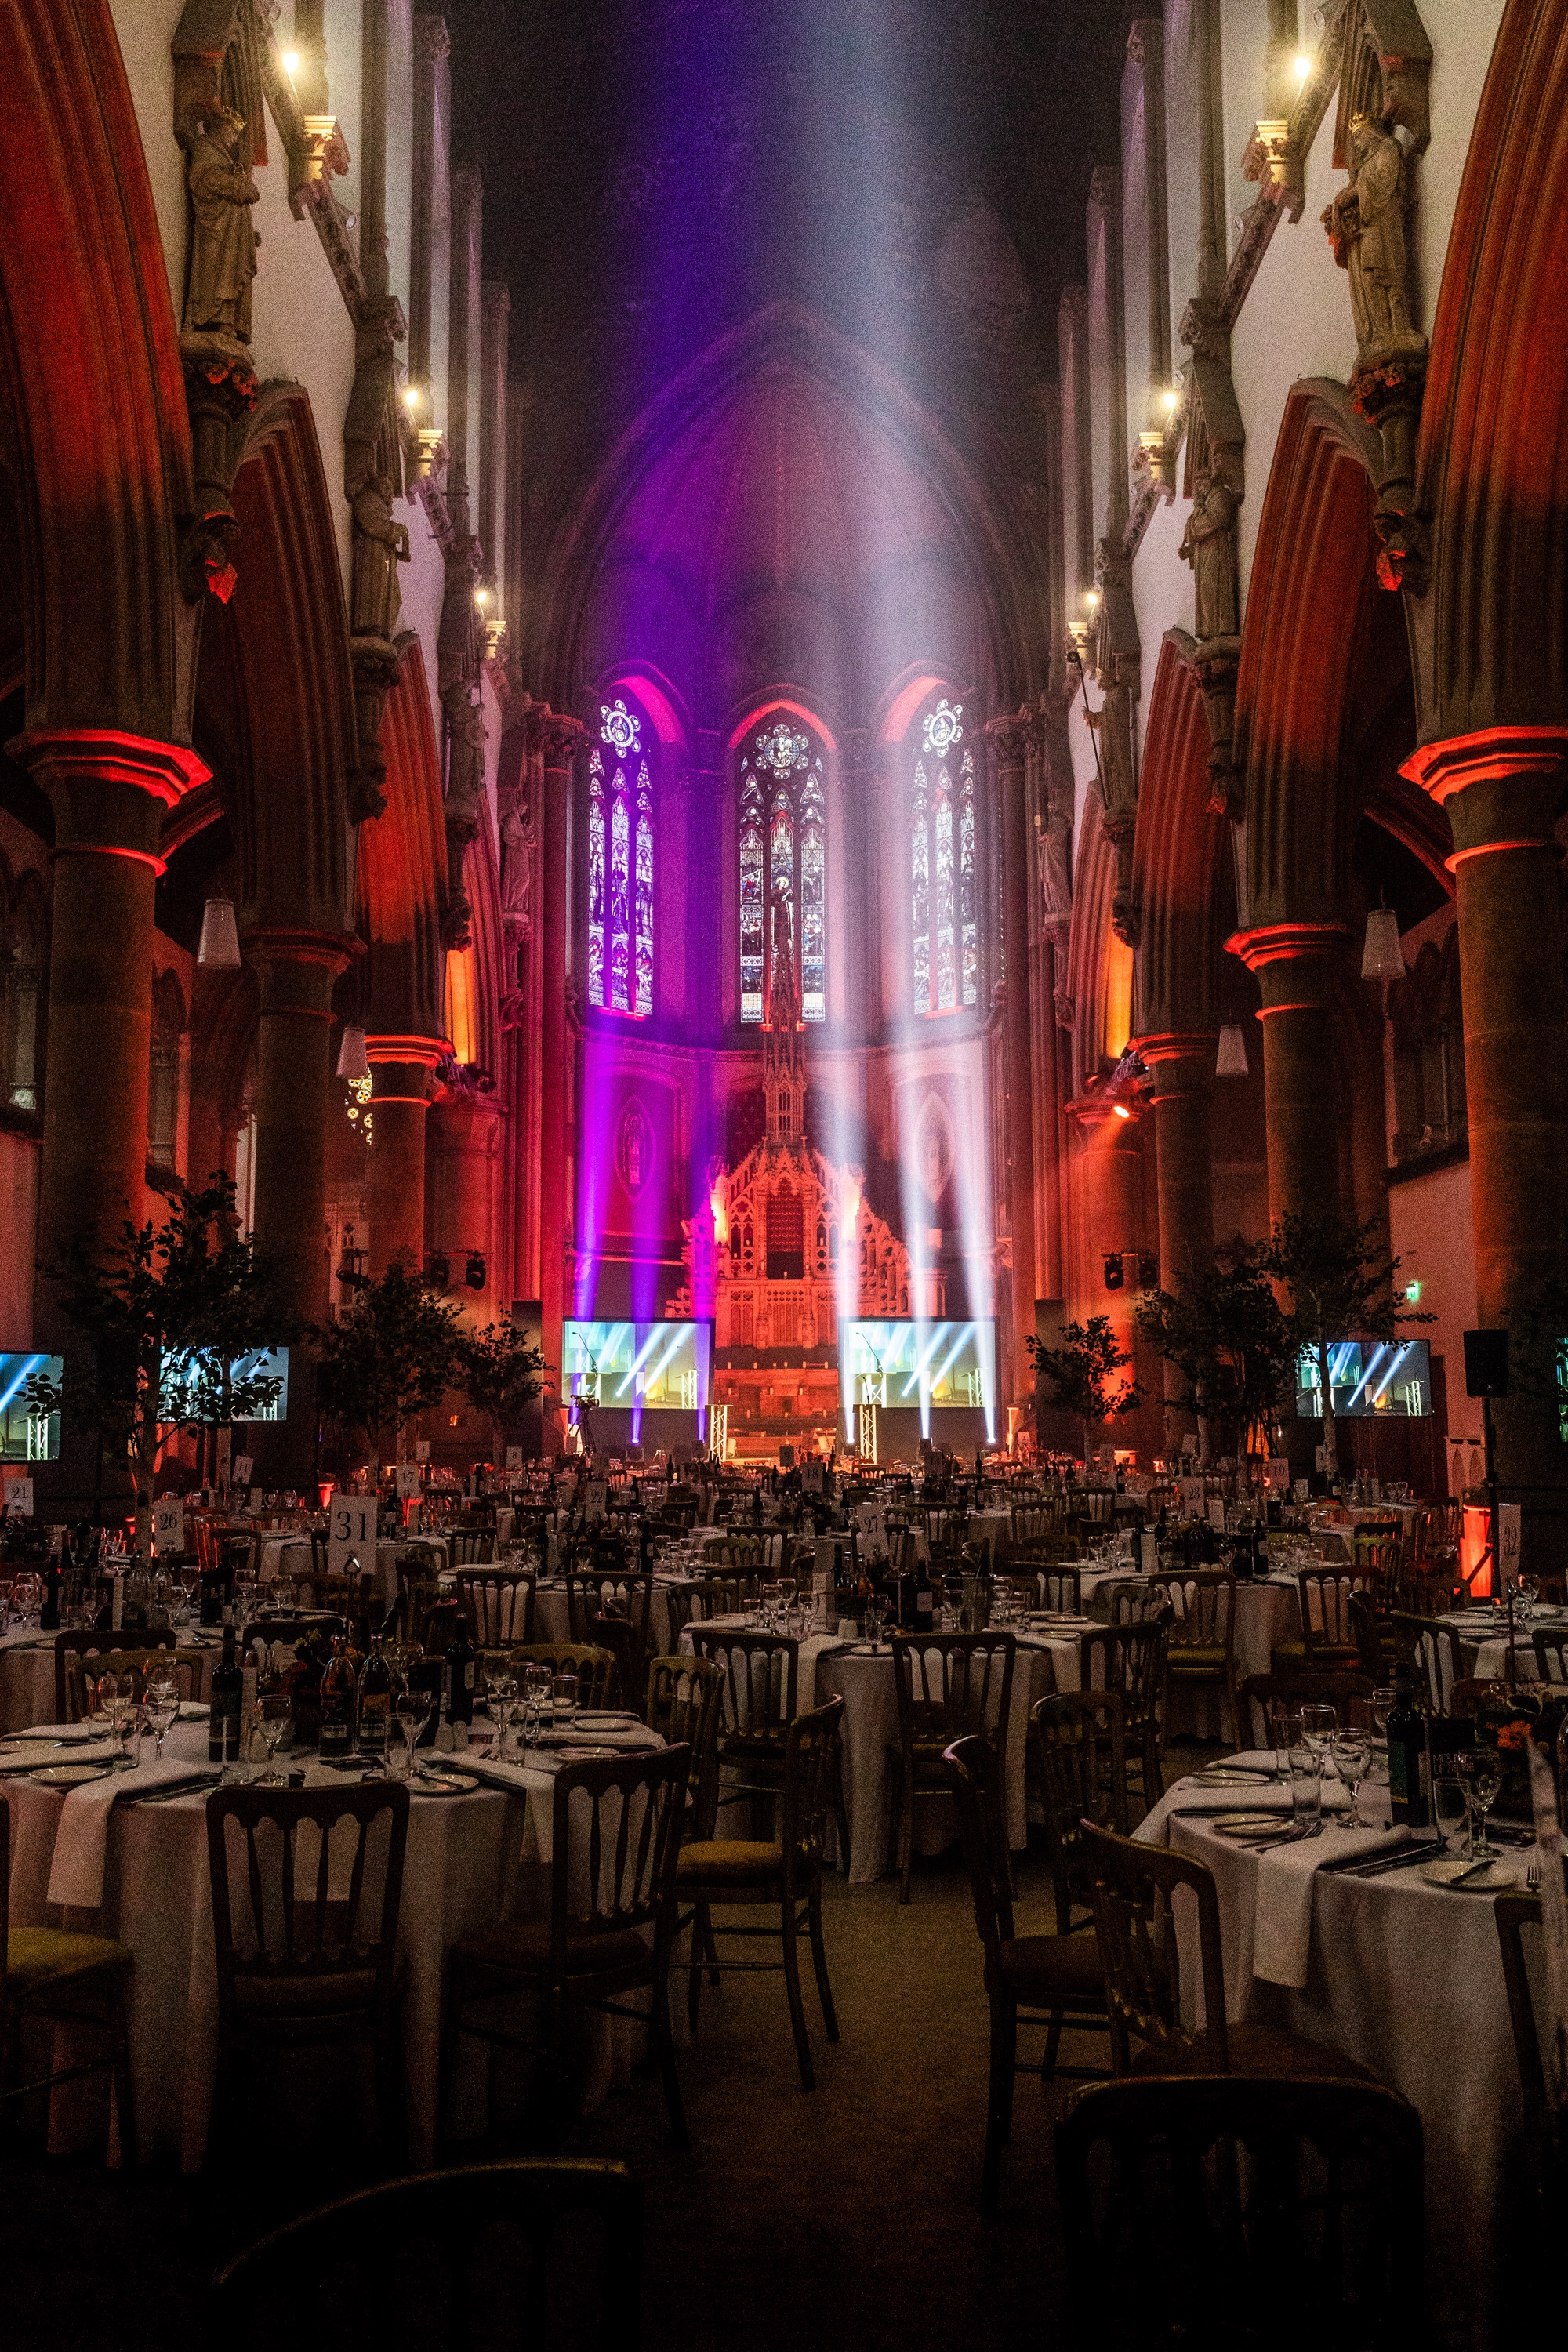 MANCHESTER FOOD AND DRINK FESTIVAL 2019 AWARDS SHORTLIST ANNOUNCED